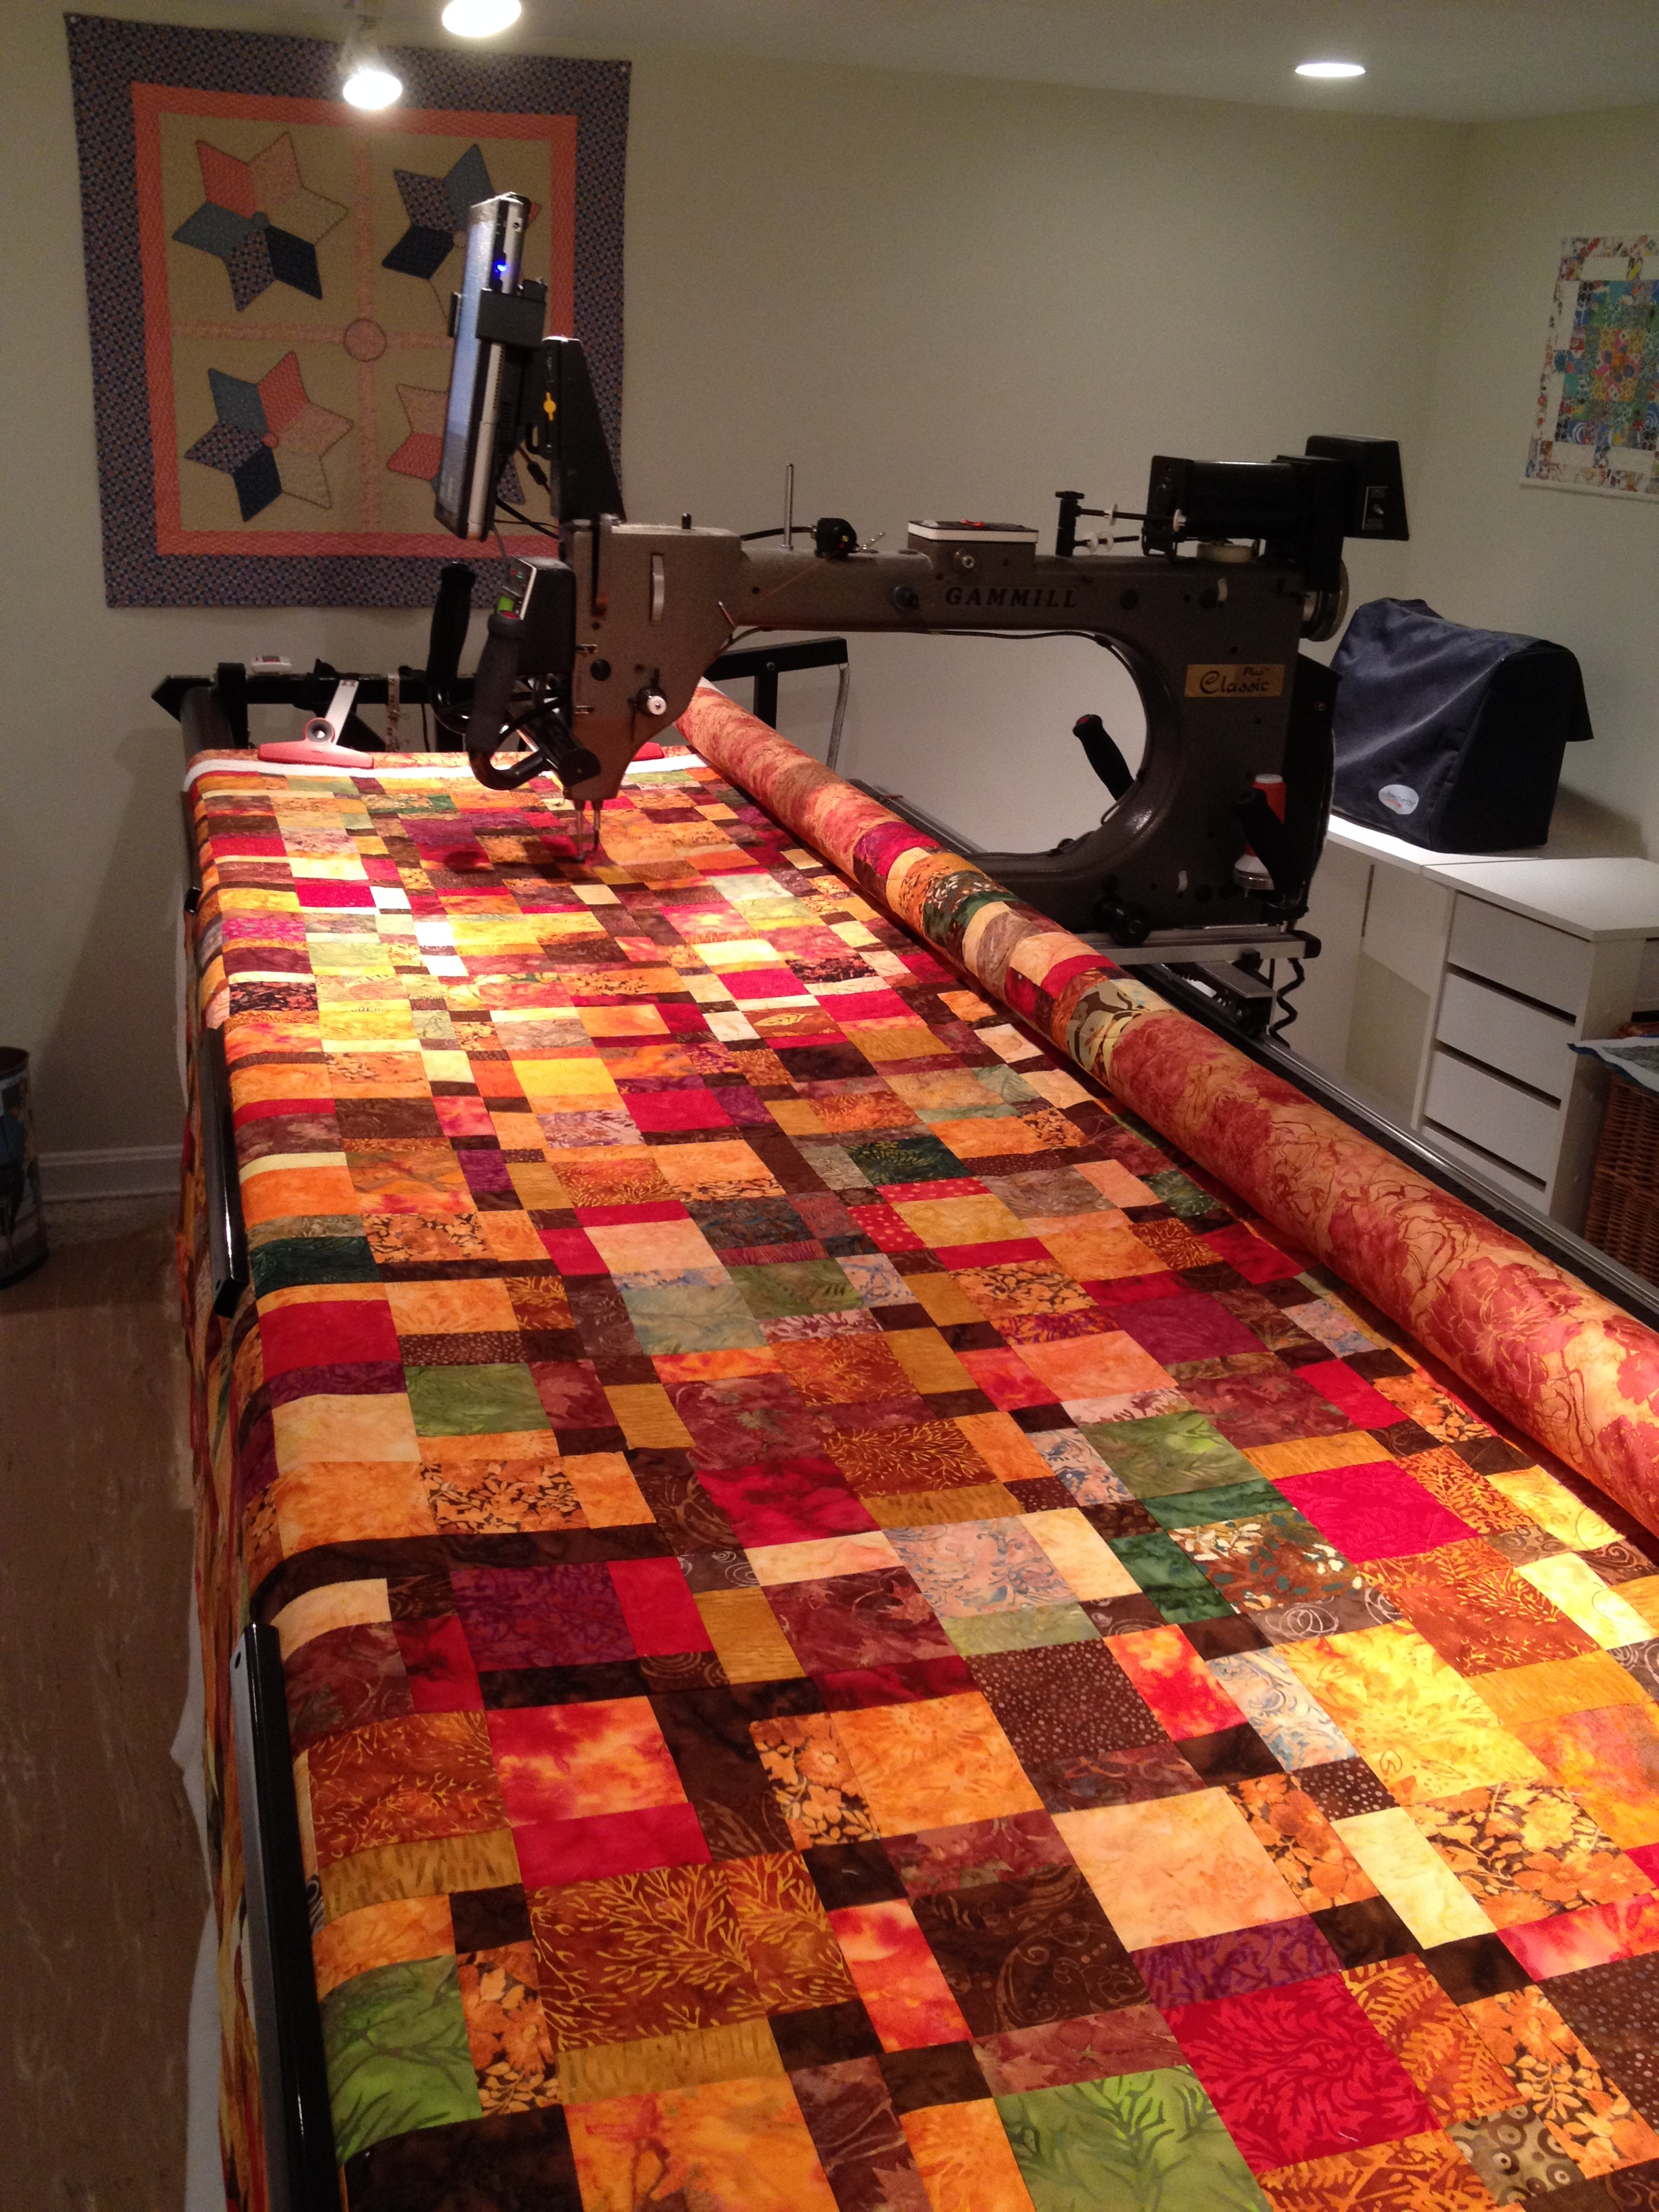 Gallery of Quilts | Machine Quilting Services of Vermont : fall quilt - Adamdwight.com